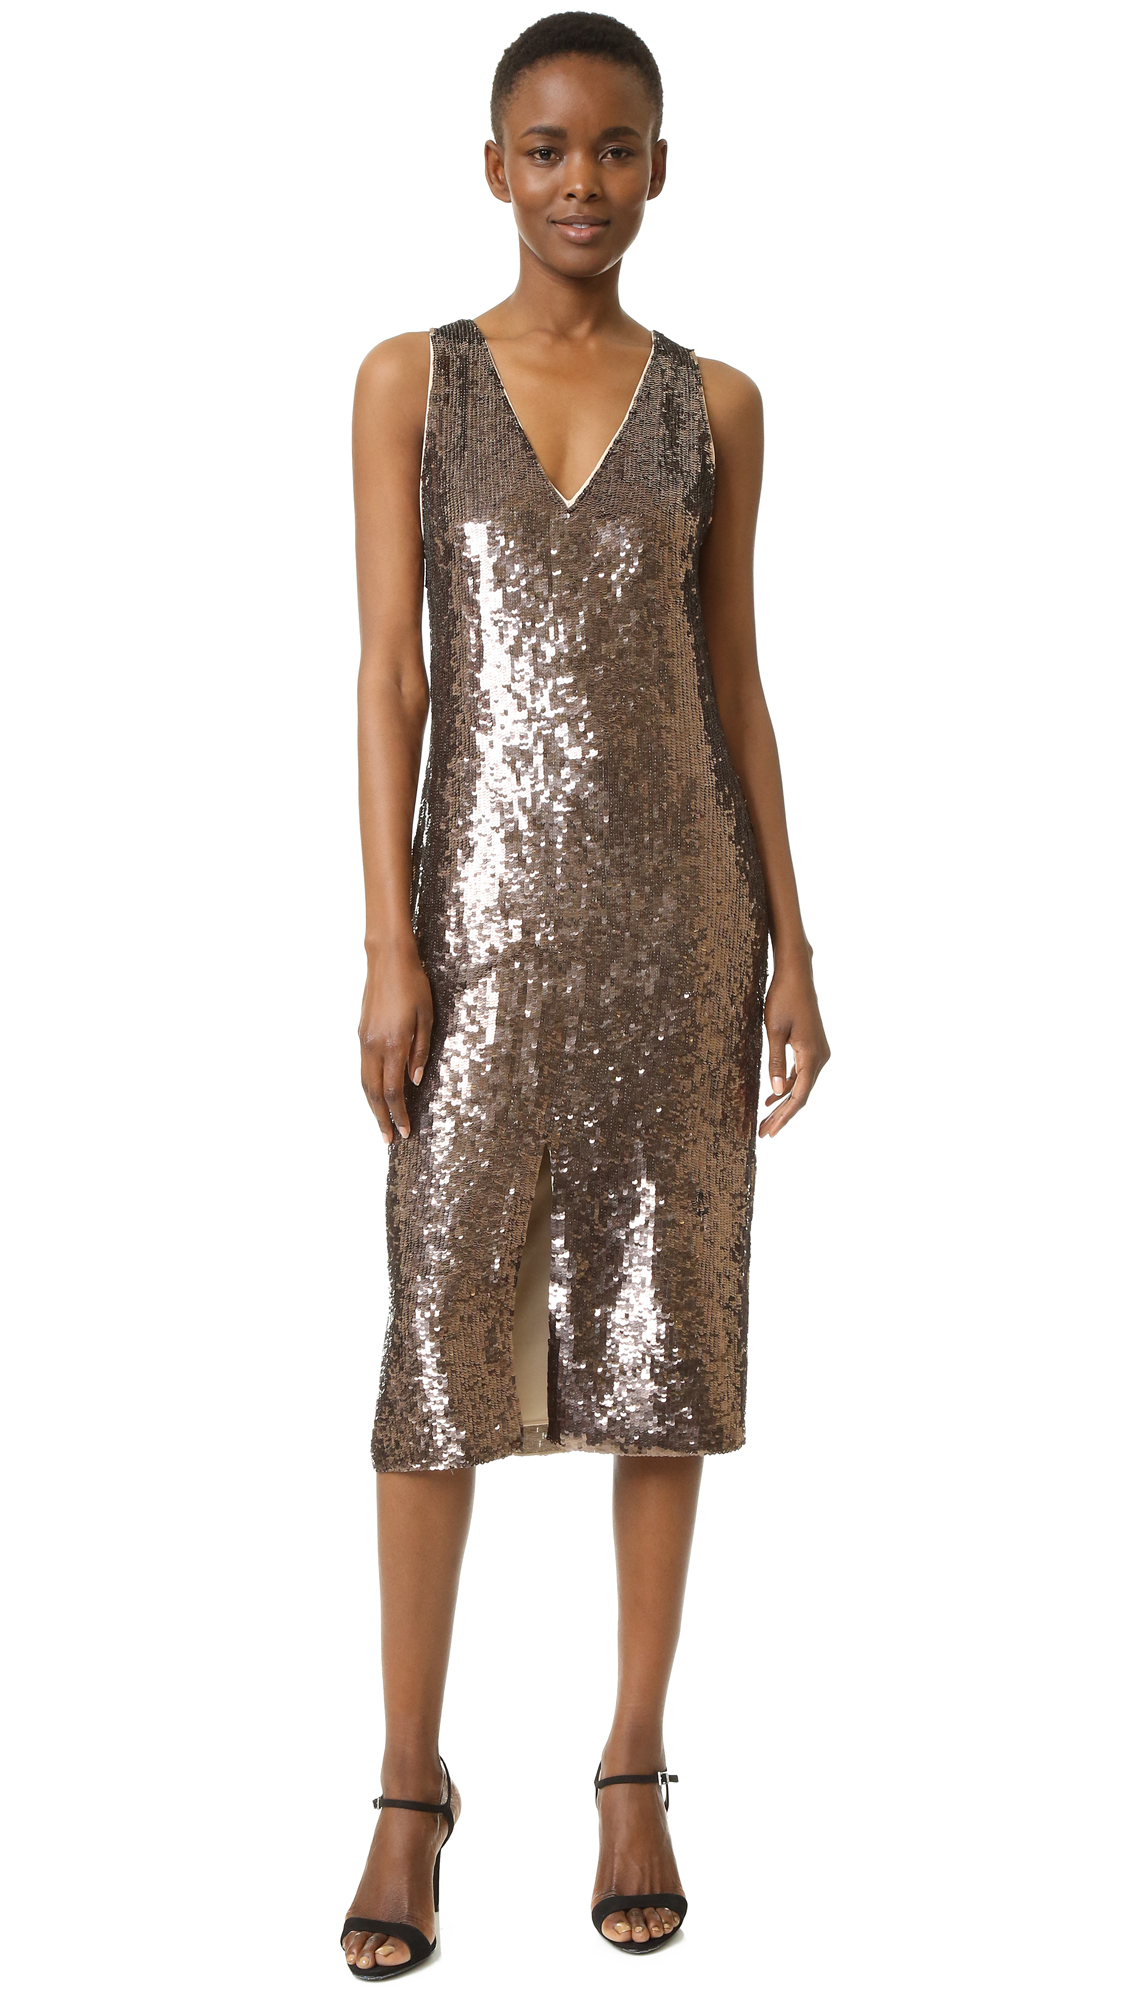 Sequins cover this opulent alice + olivia dress. A front vent relaxes the fit. Deep V neckline. Sleeveless. Exposed back zip. Lined. Fabric: Sequined gauze. Shell: 100% polyester. Lining: 95% polyester/5% elastane. Dry clean. Imported, India. Measurements Length: 43.25in / 110